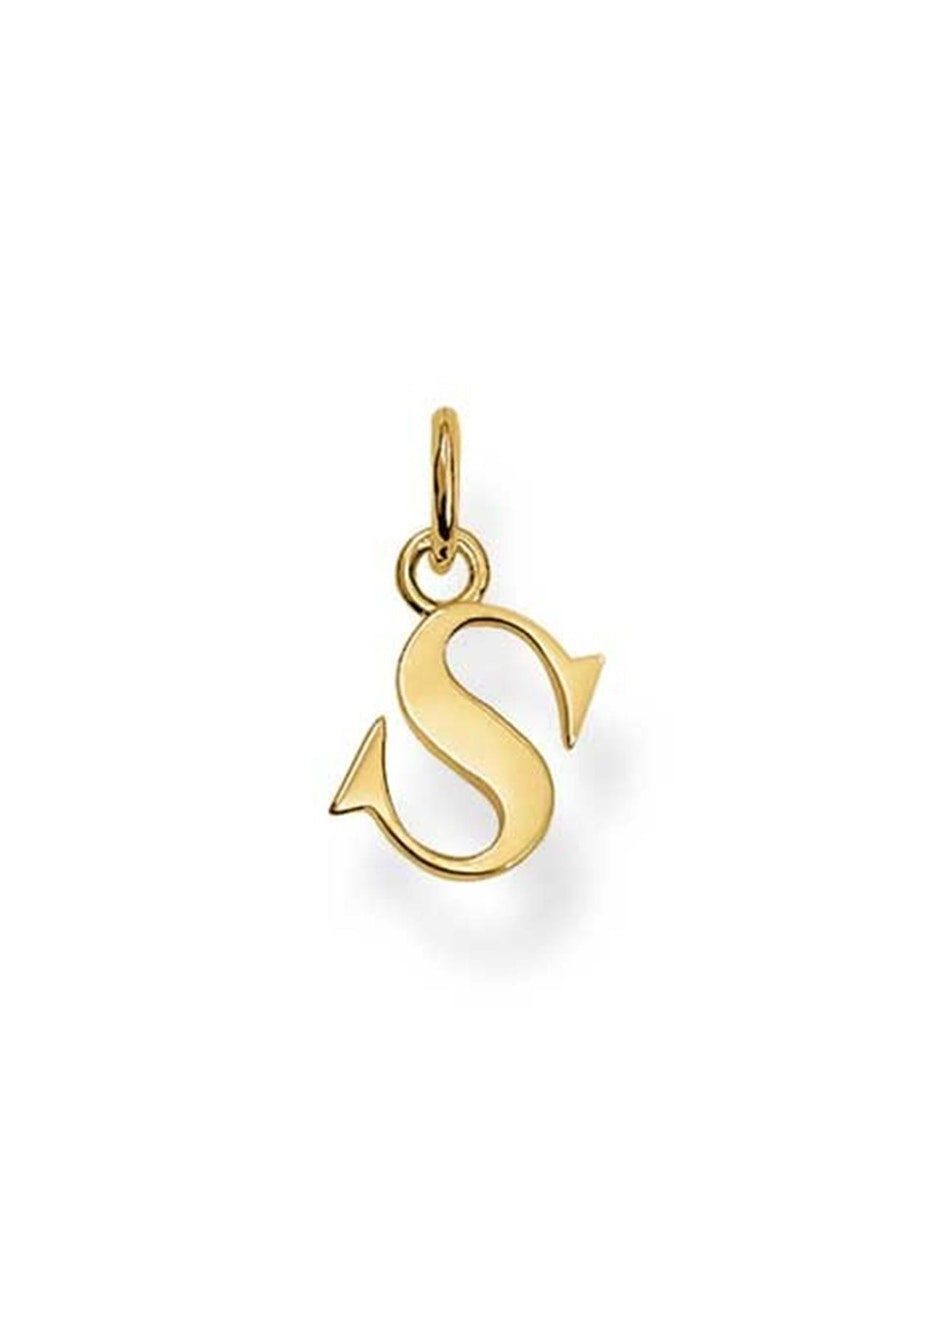 Thomas Sabo  - S' Pendant - Yellow Gold Plated